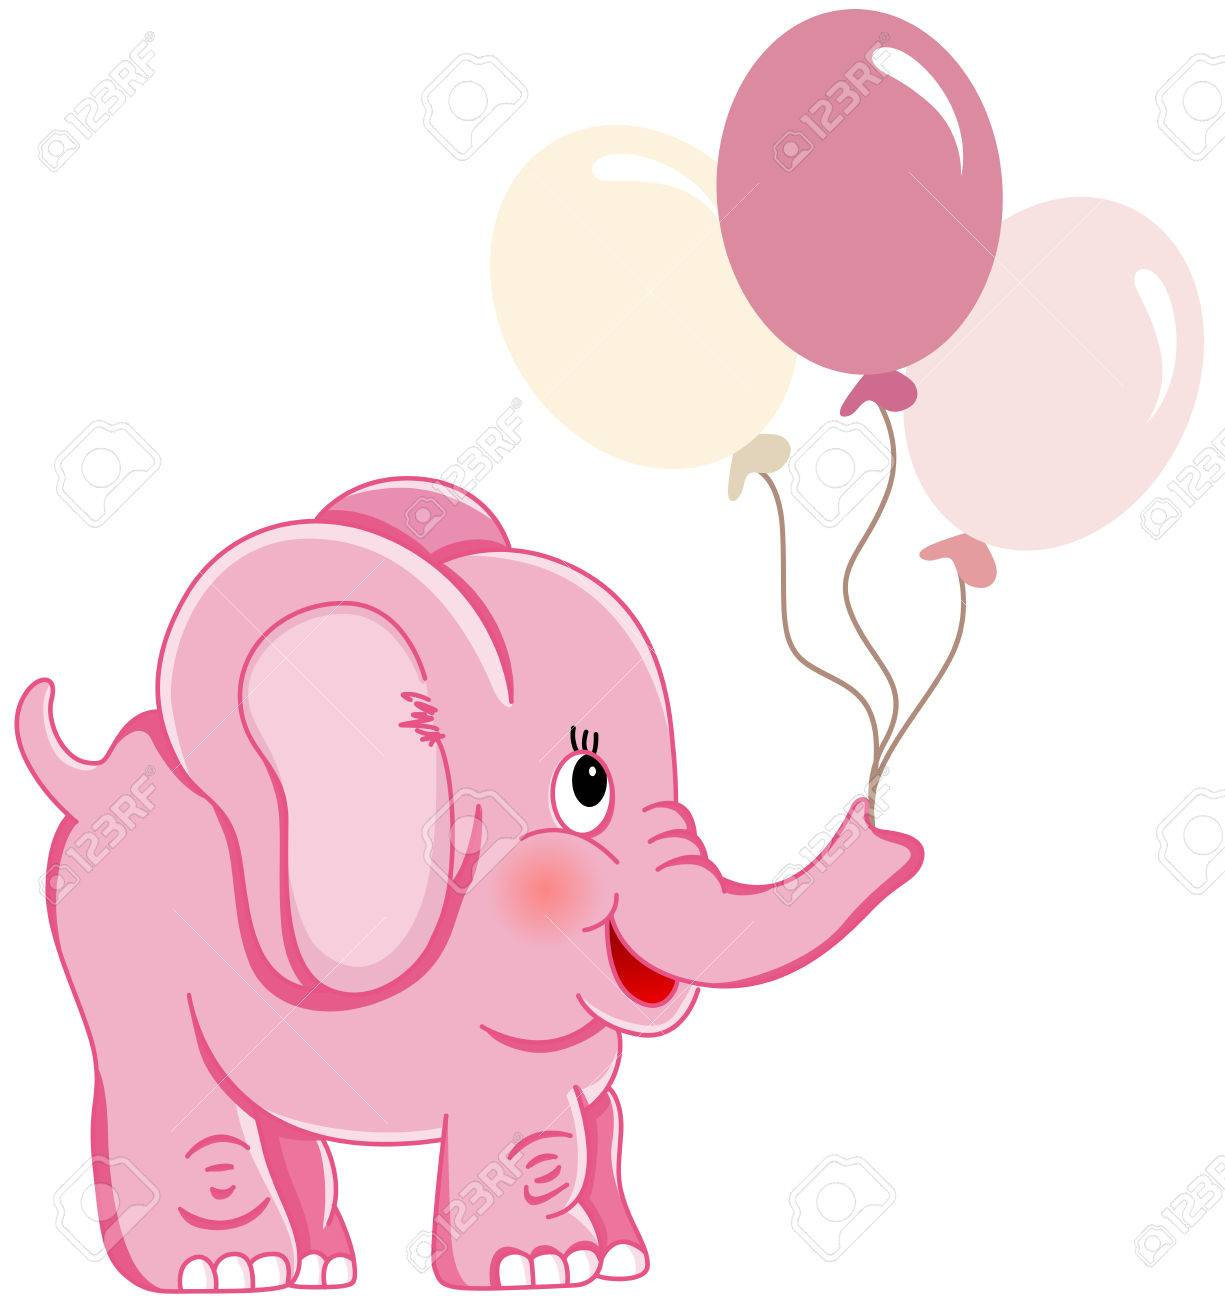 Cute pink elephant holding balloons.